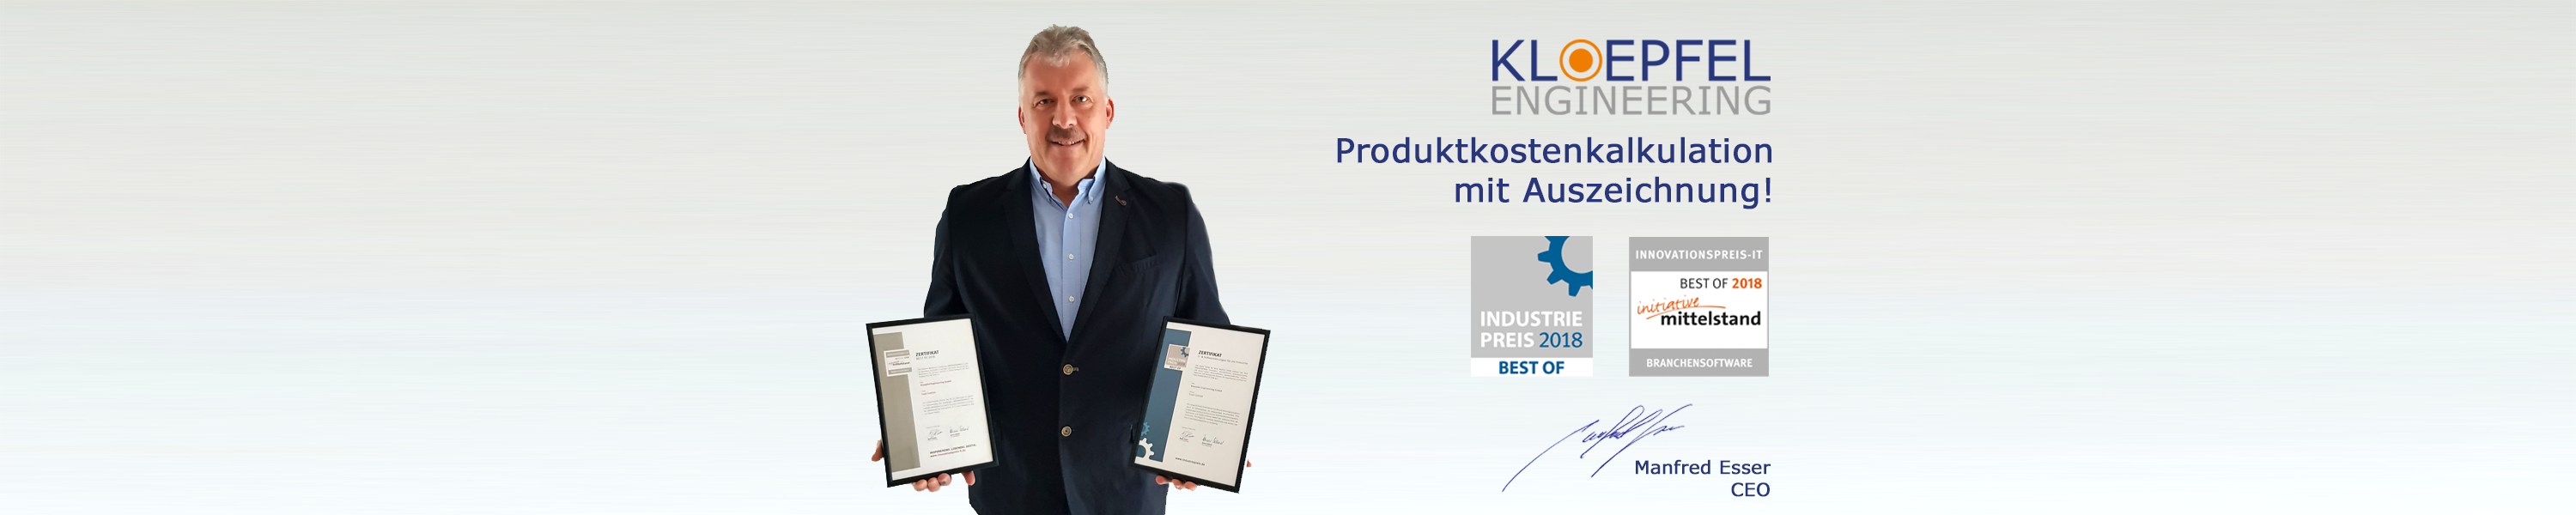 Industrie-und-Innovationspreis_Slider